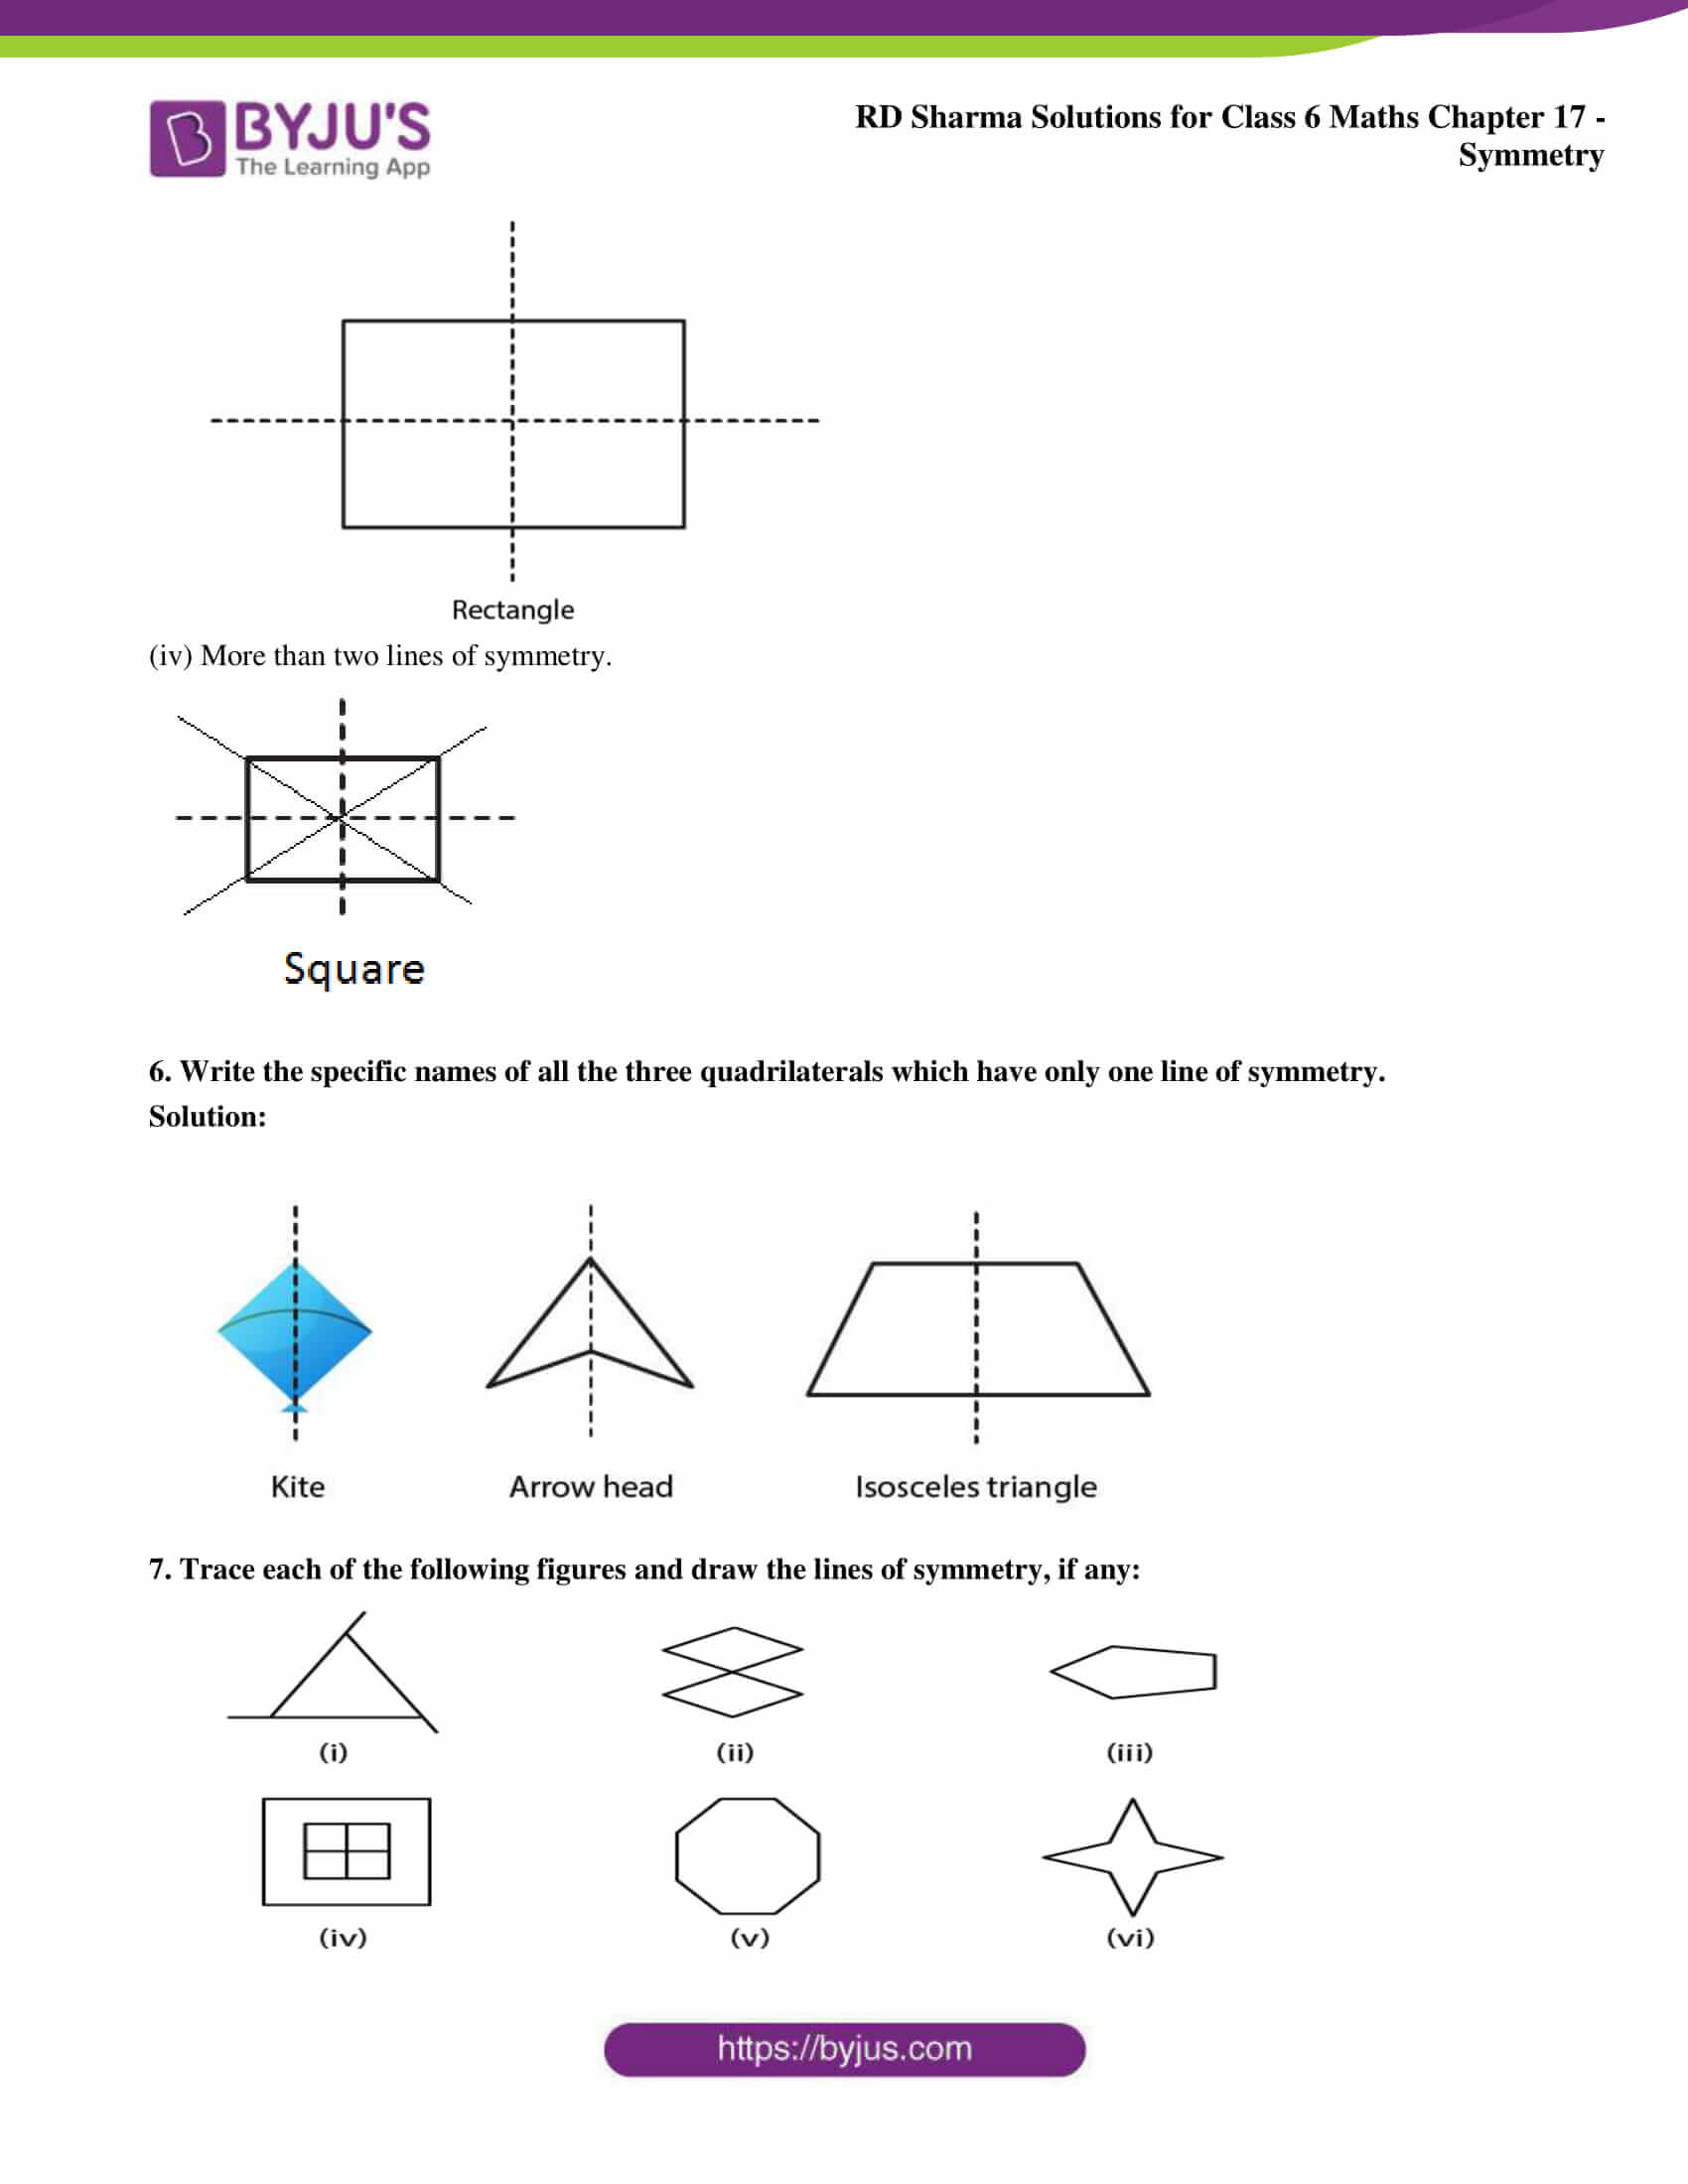 rd sharma solutions nov2020 class 6 maths chapter 17 exercise 3 10